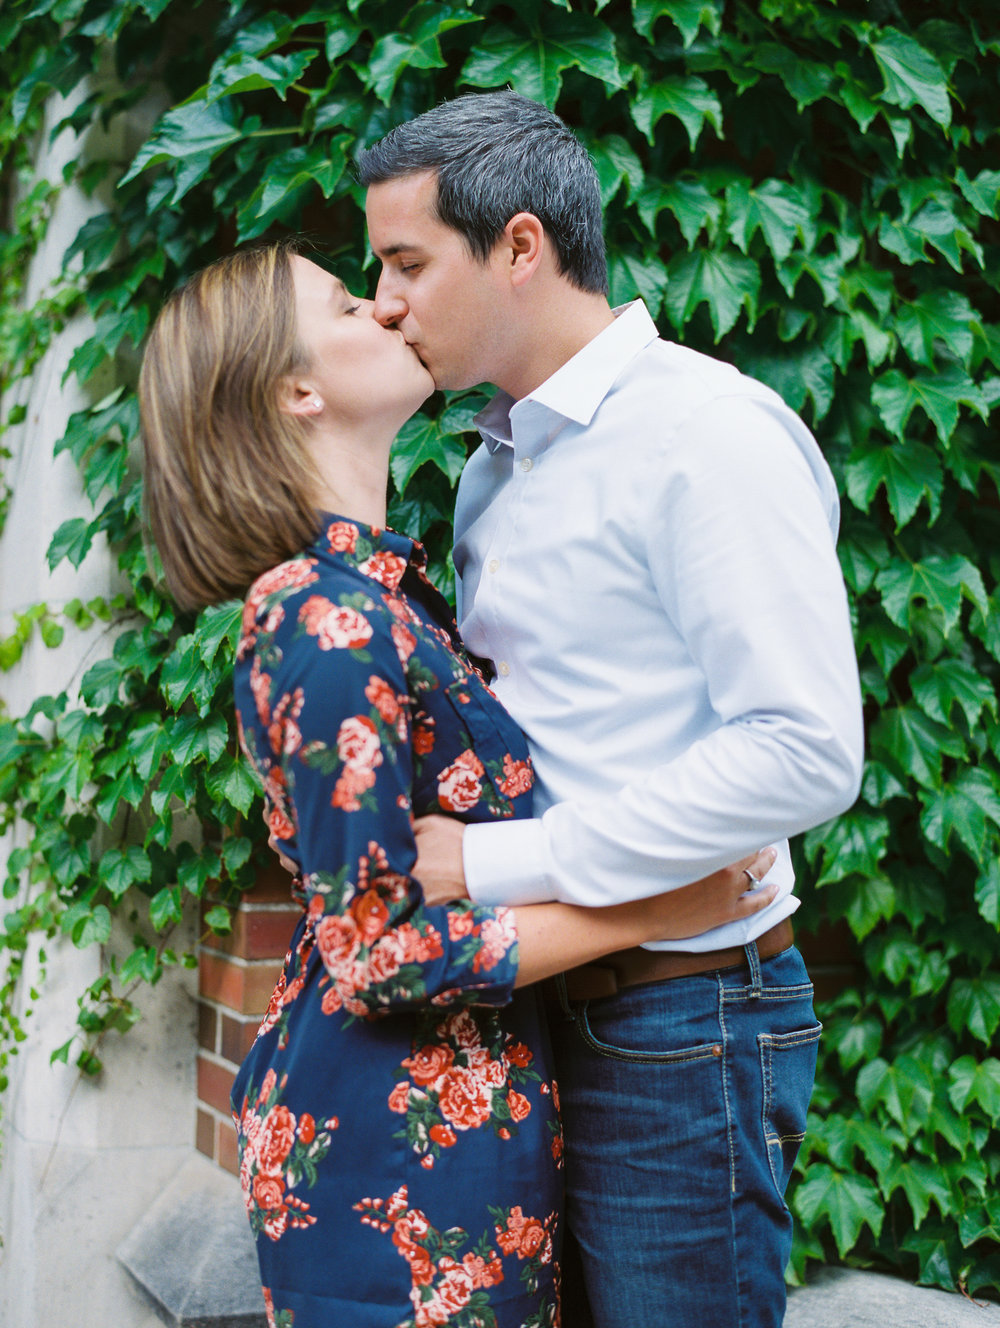 Erica+Jackson+Grand+Rapids+Engagement-87.jpg